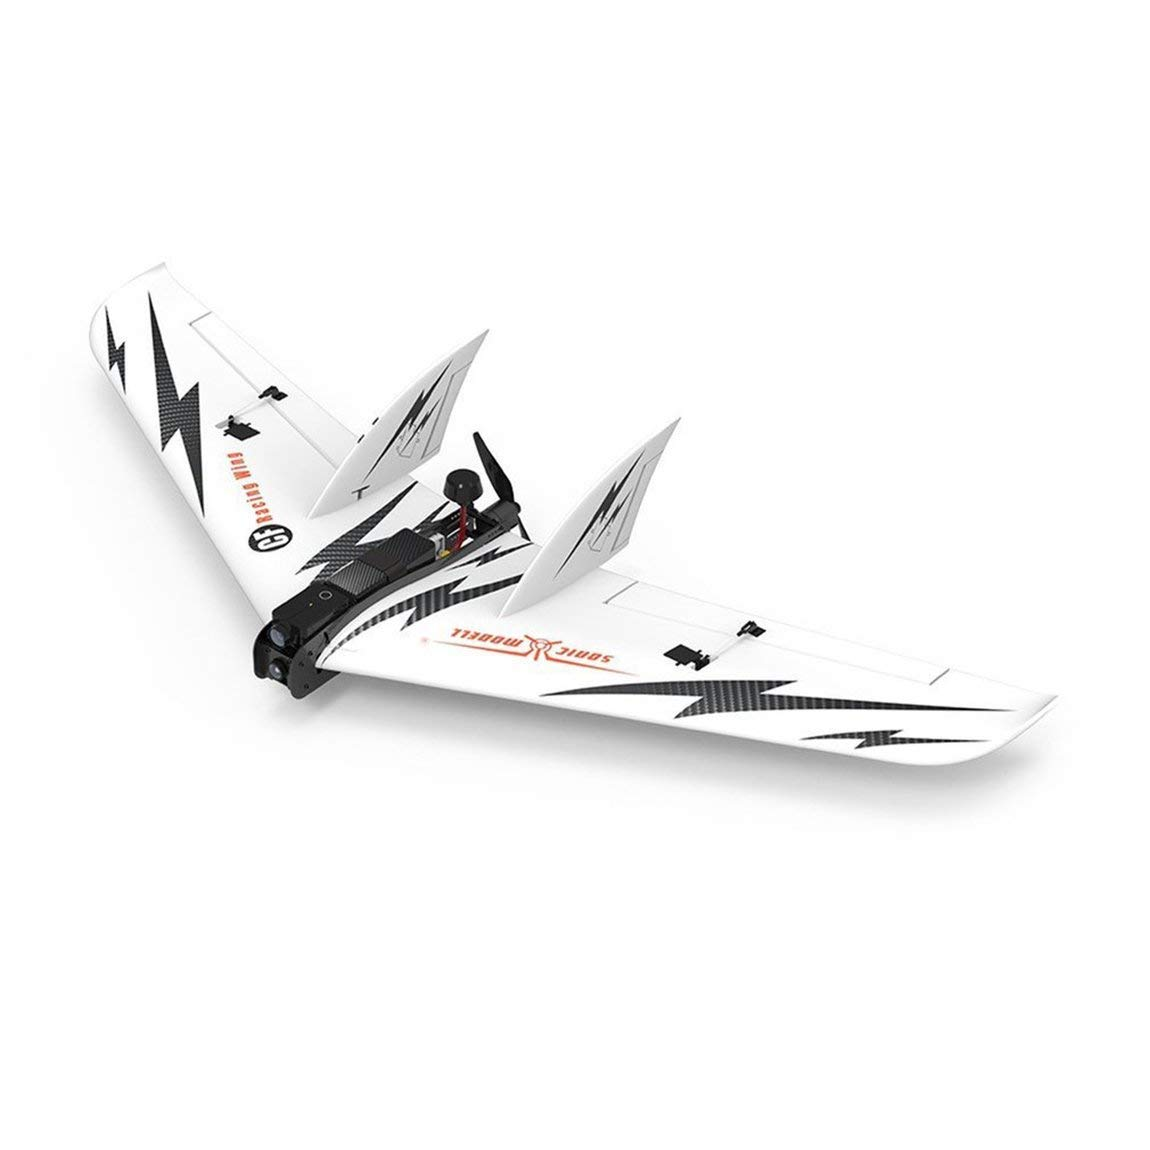 73JohnPol Sonic Modell 1030mm Spannweite EPO FPV Fixed Wing RC Flugzeug Drone Aircraft PNP Carbon RC Flugzeug mit Brushless Motor (Farbe  weiß)